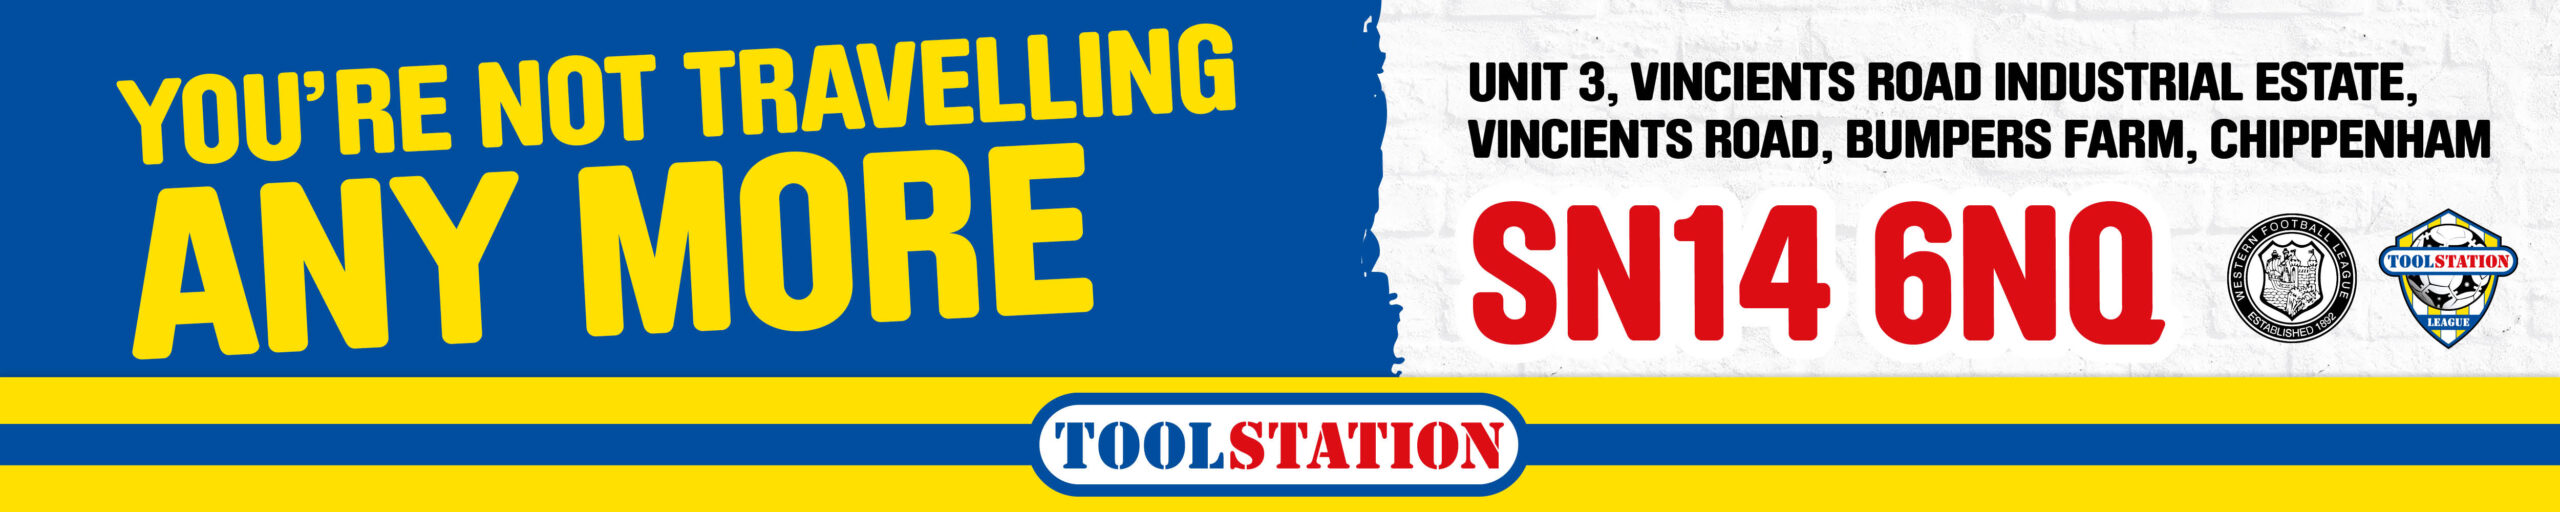 Chippenham Toolstation